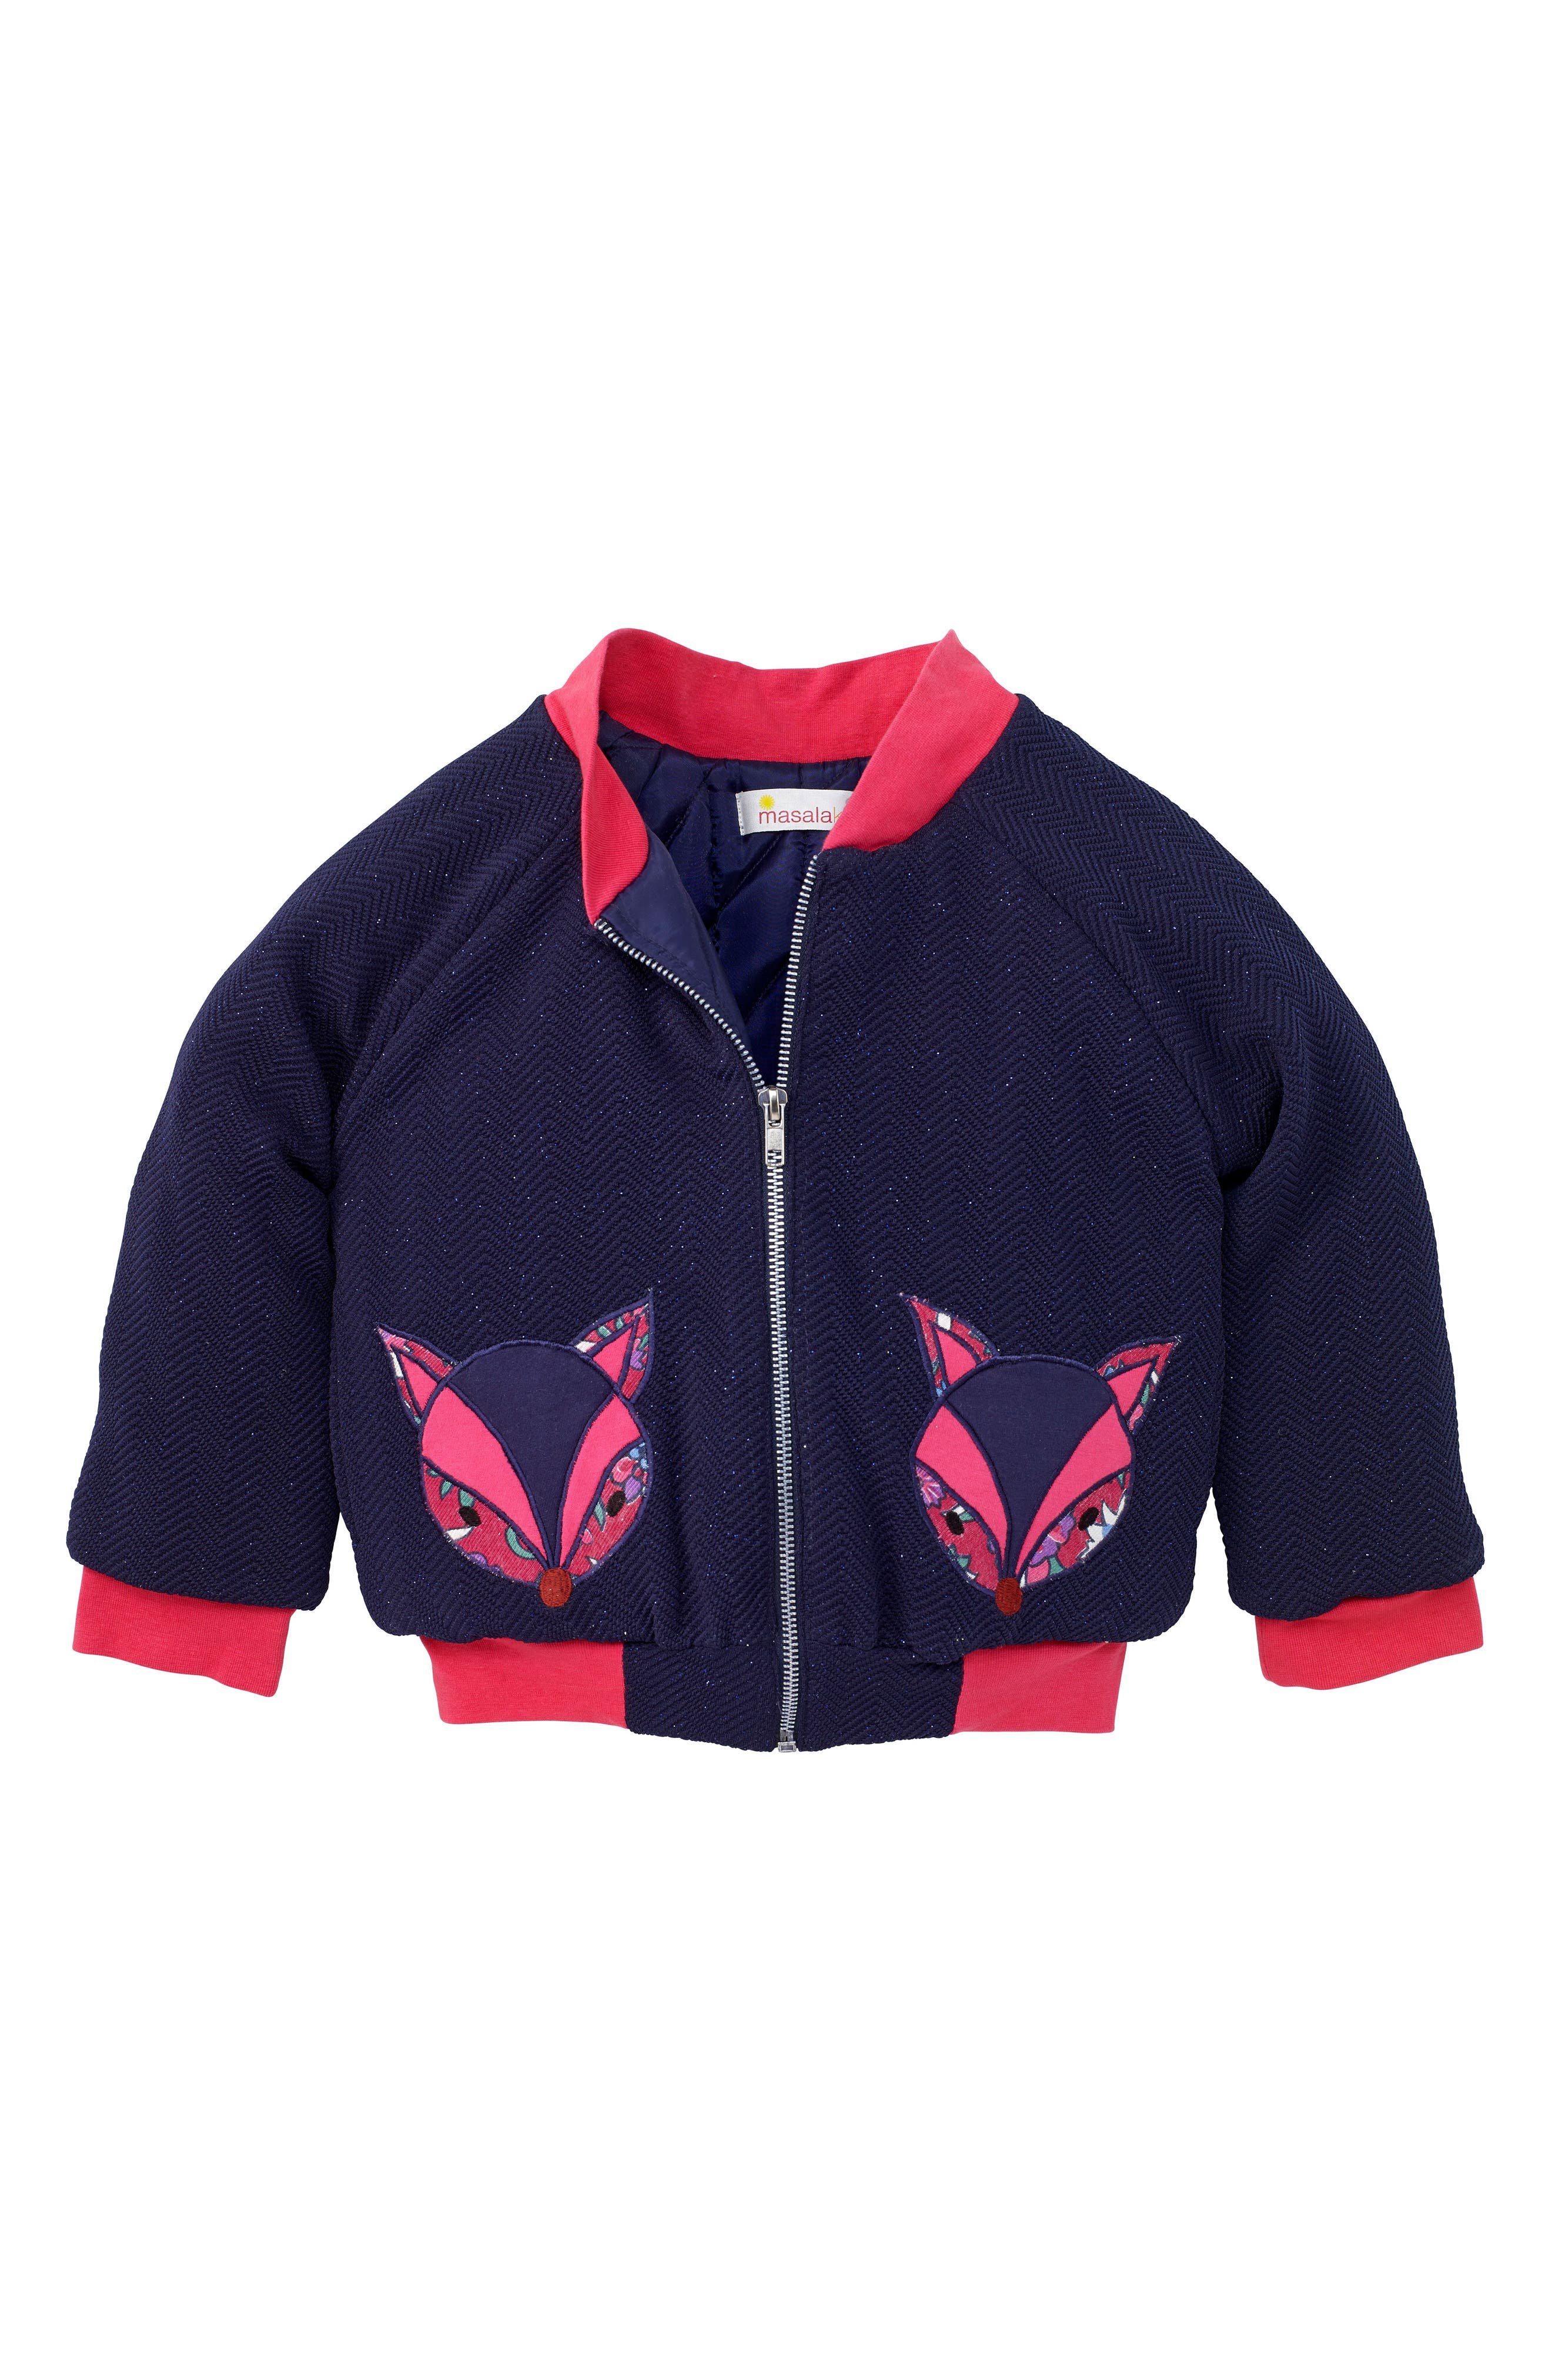 Foxy Bomber Jacket,                             Main thumbnail 1, color,                             Navy